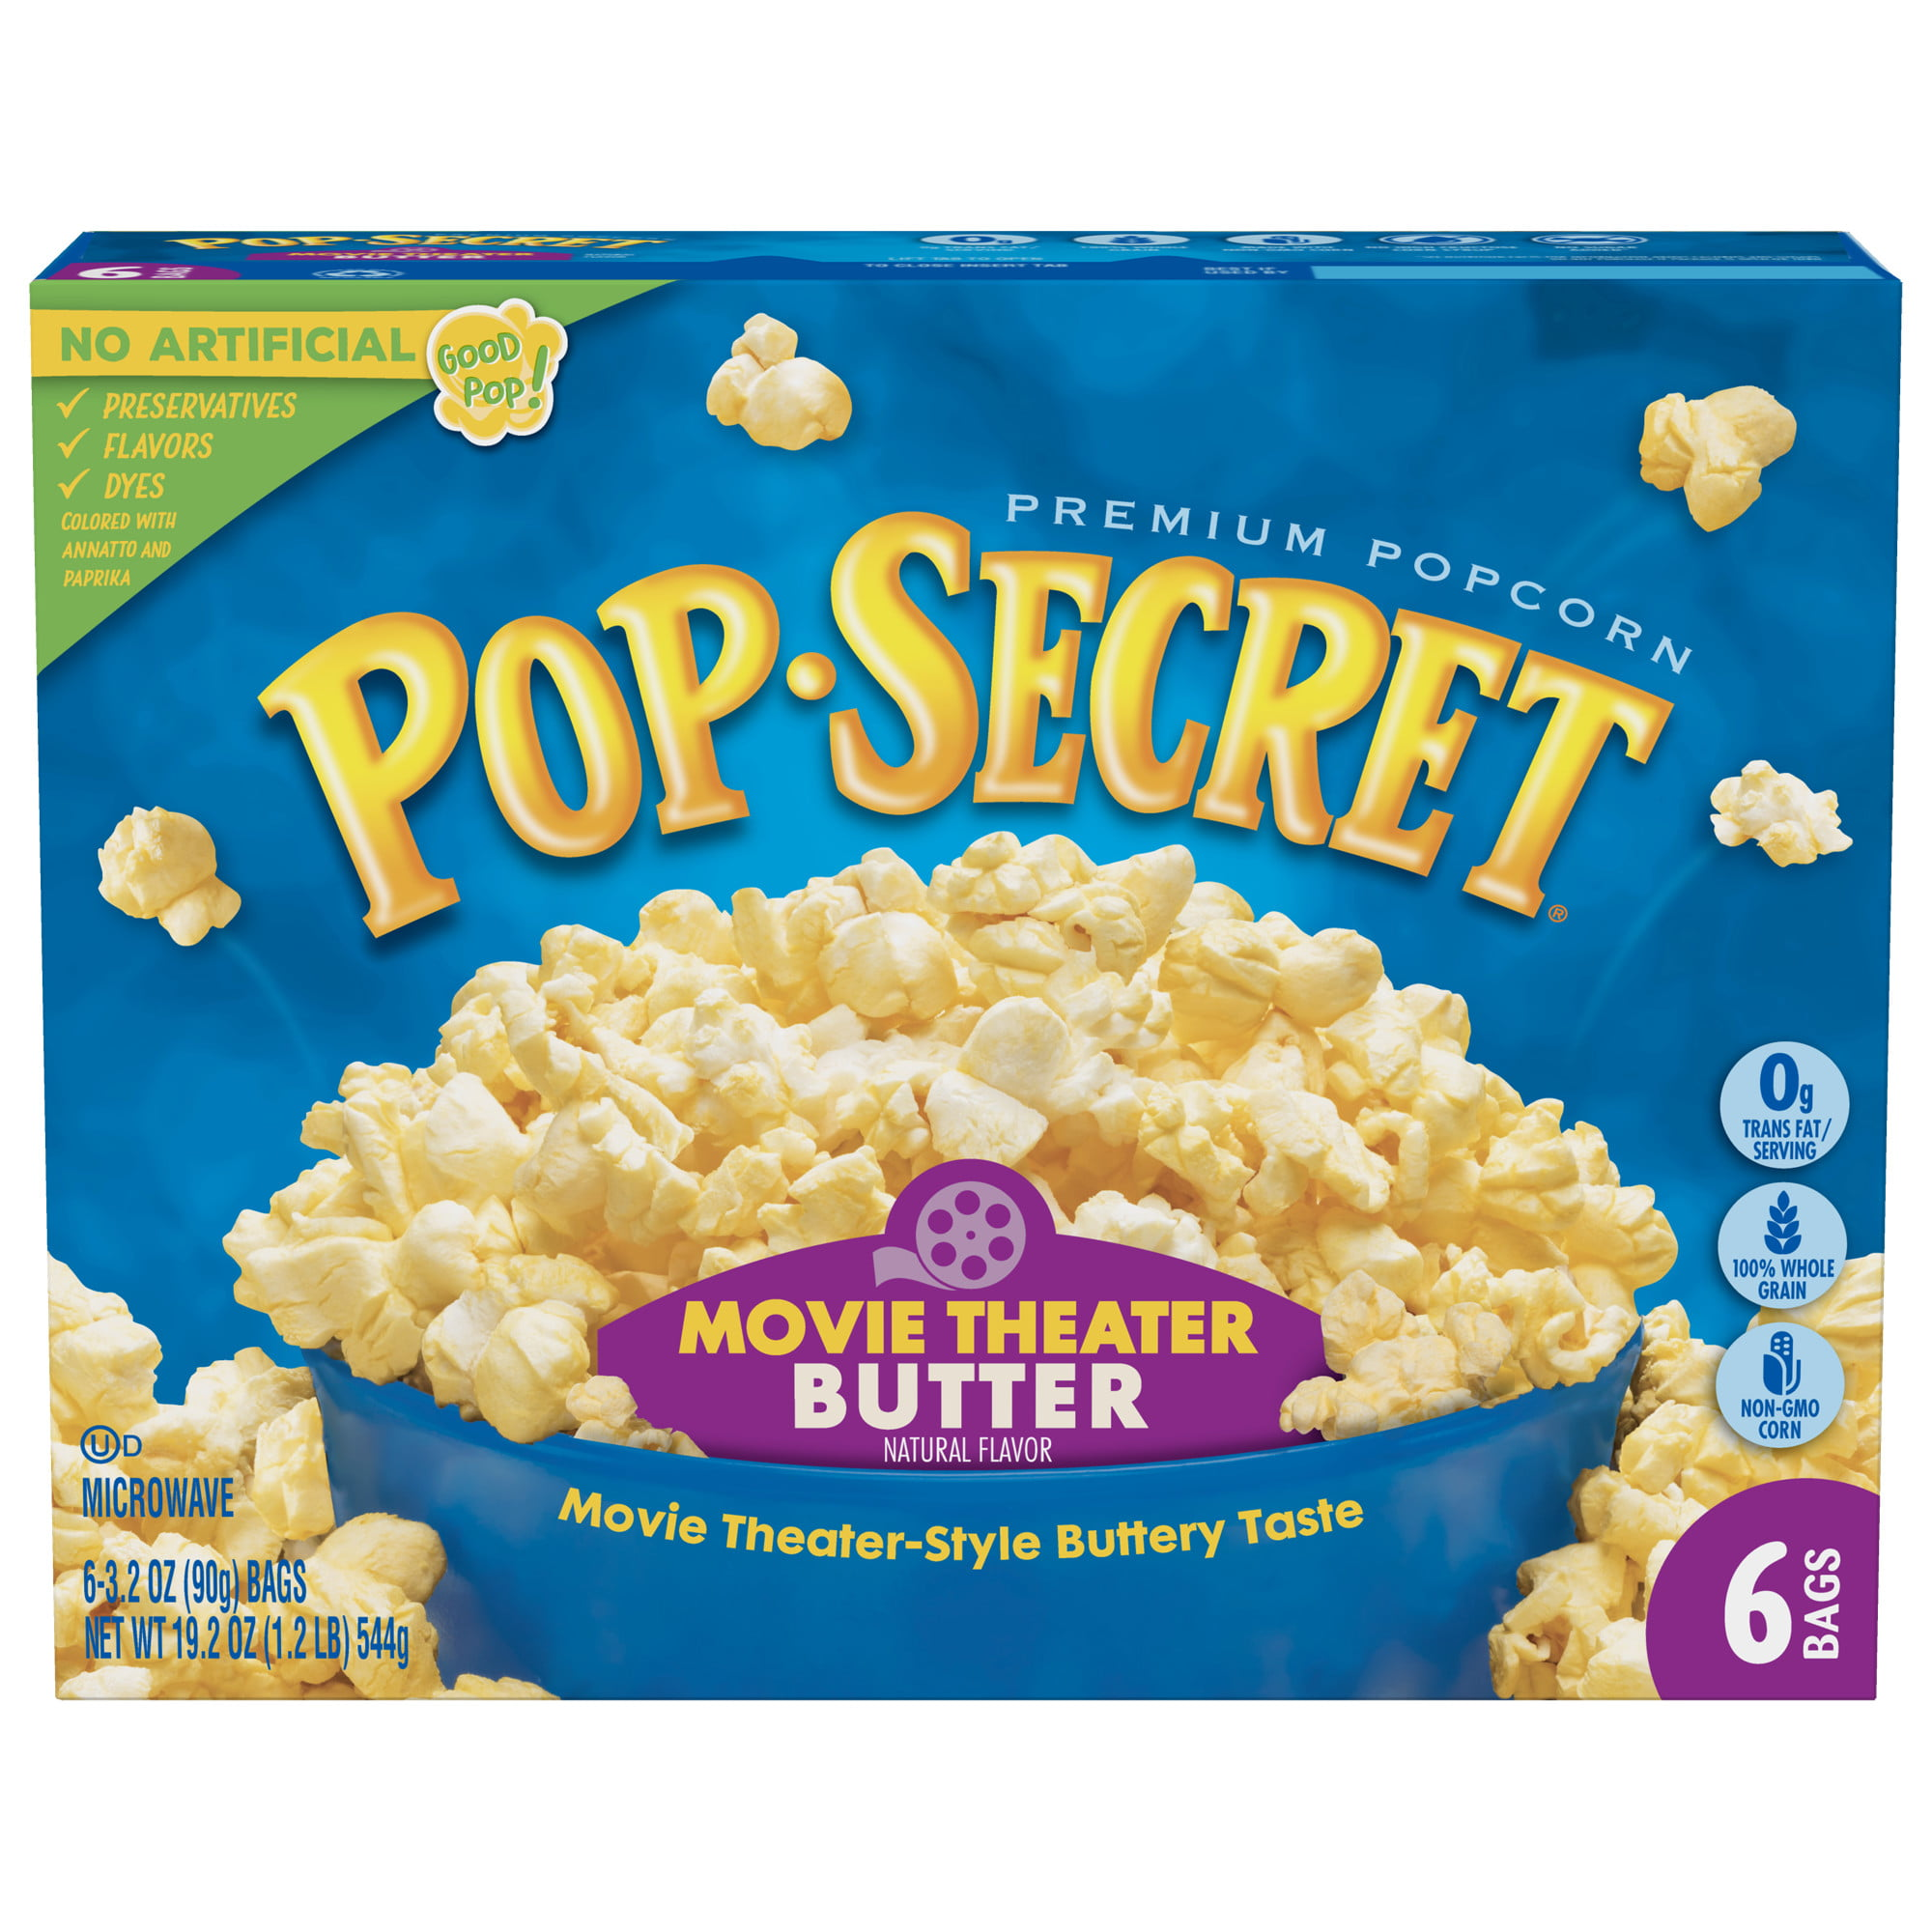 Pop Secret Movie Theater Butter Microwave Popcorn 3 2 Oz 6 Ct Walmart Com Walmart Com